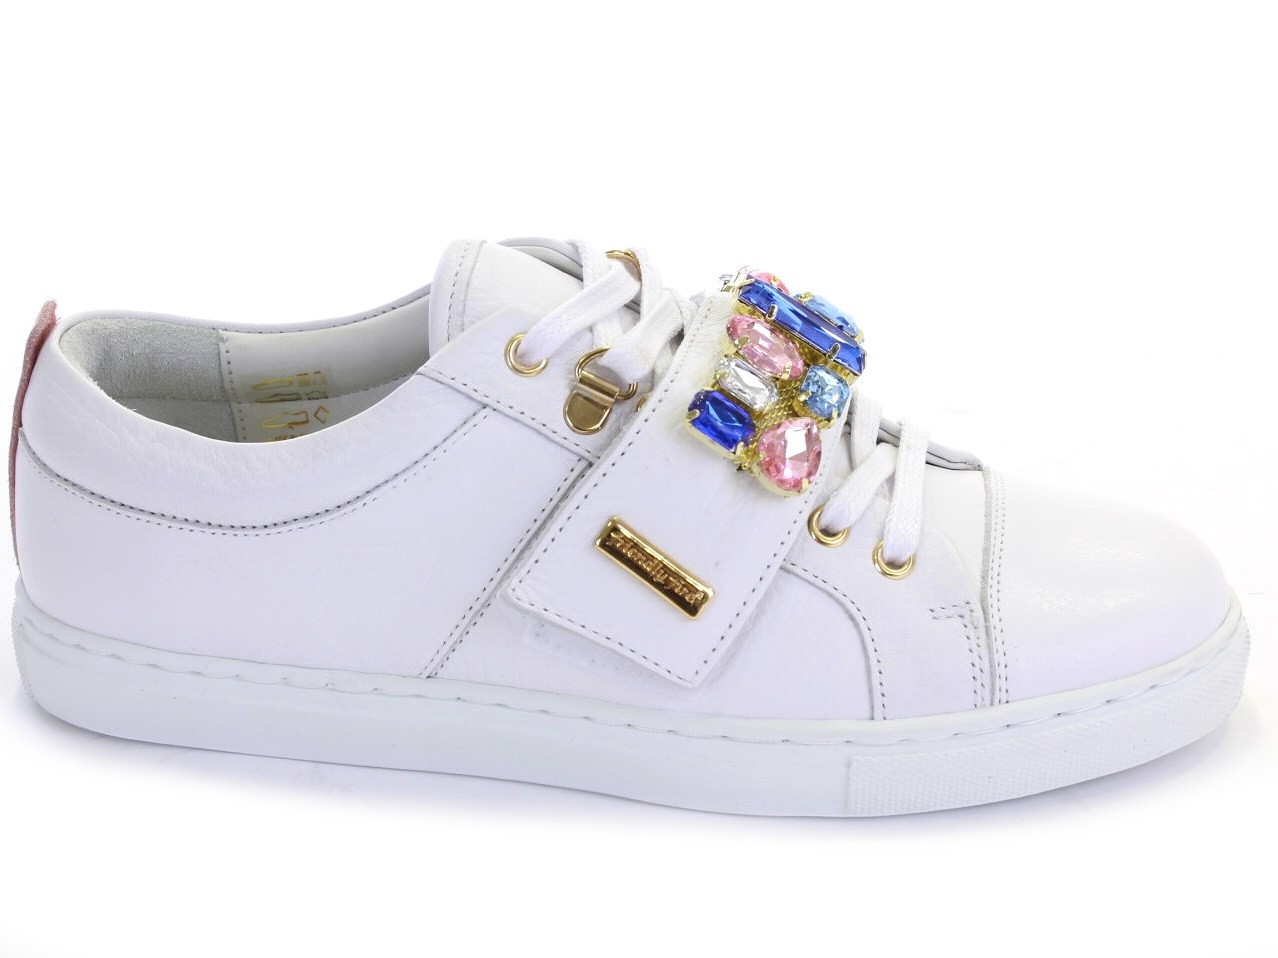 Sneakers and Espadrilles Friendly Fire - 648 GALA SB BRIL